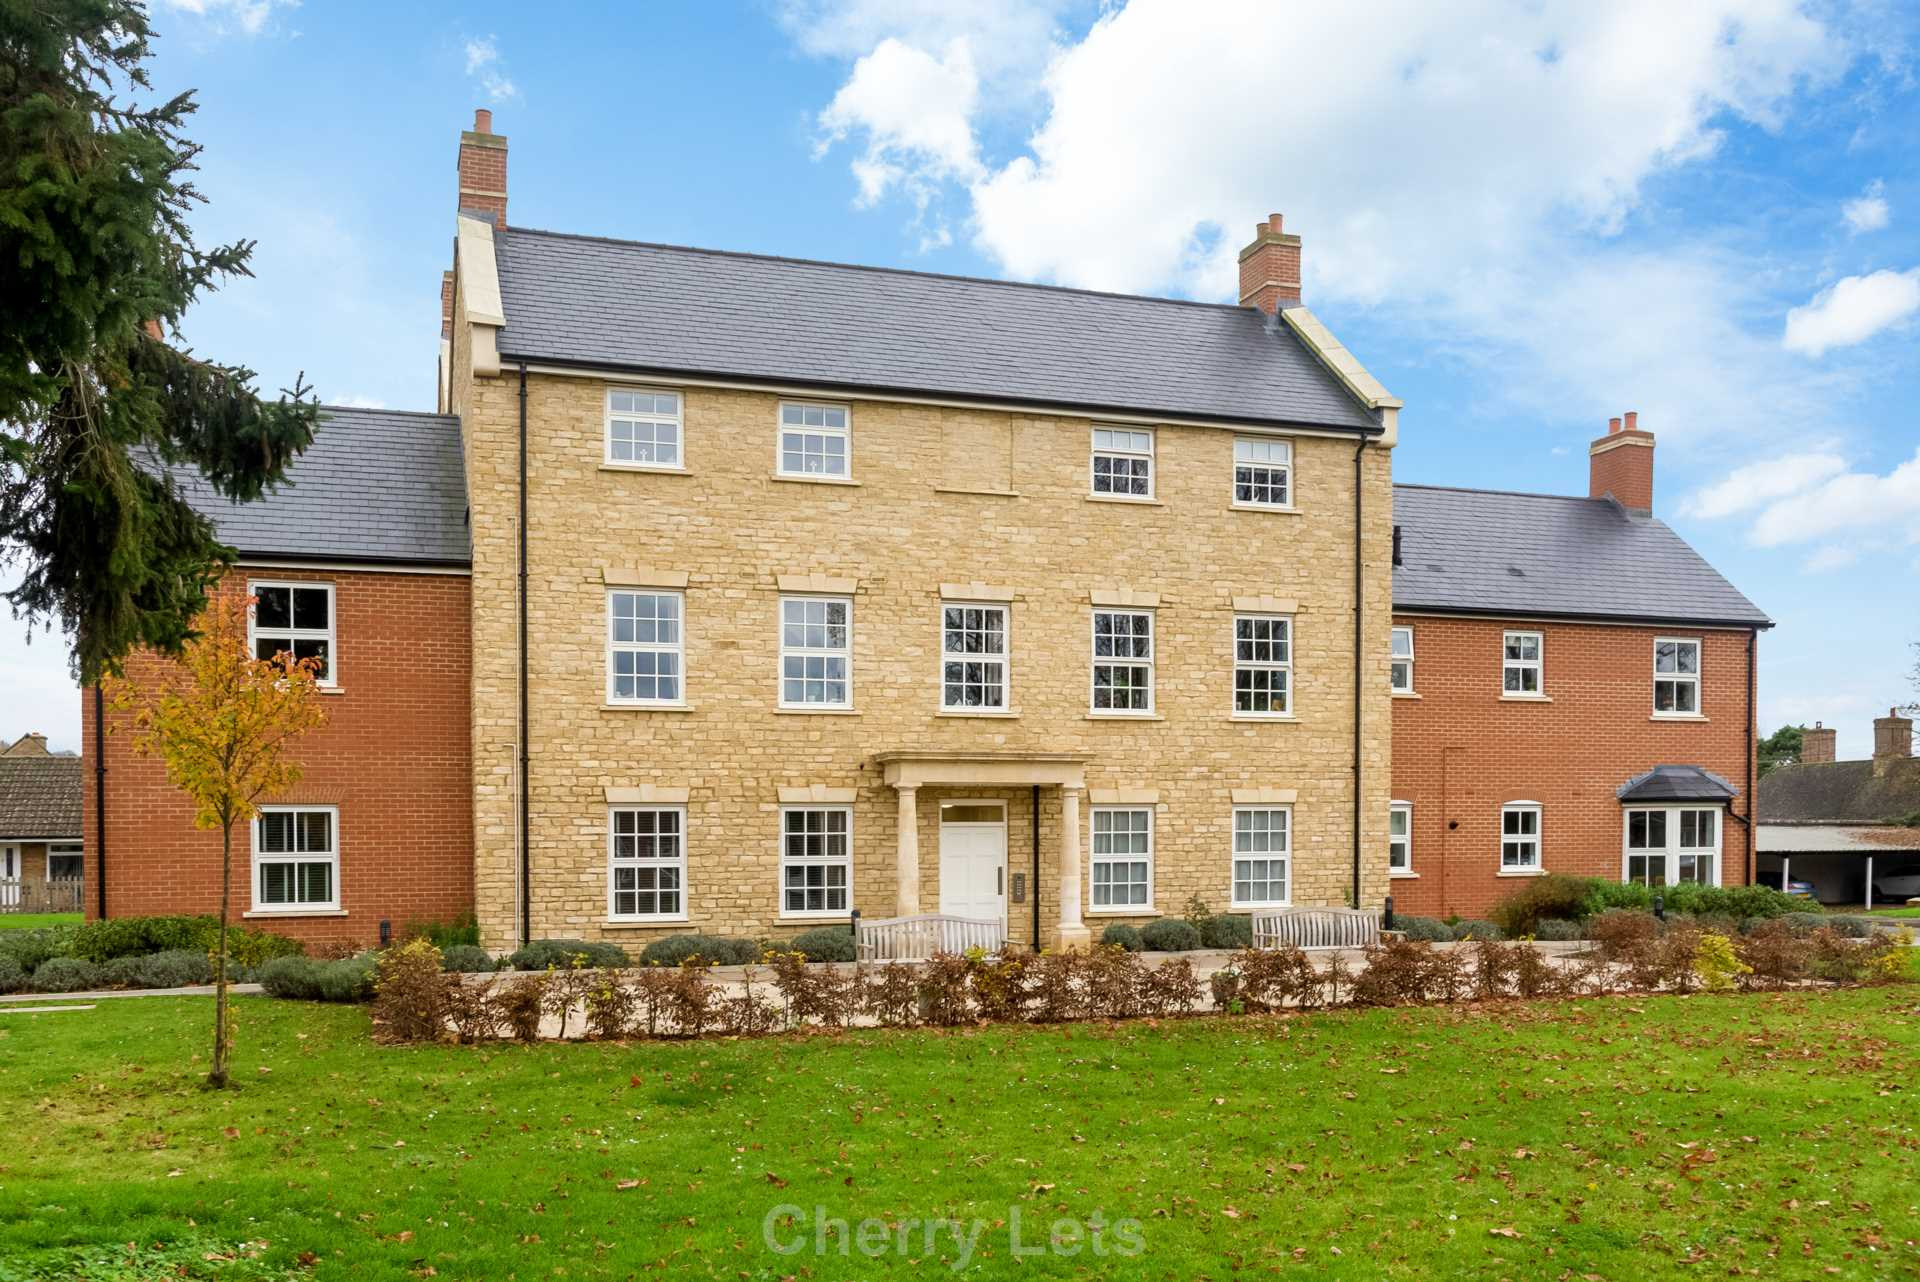 2 bed apartment to rent in Astrop Grange, Kings Sutton, OX17  - Property Image 2